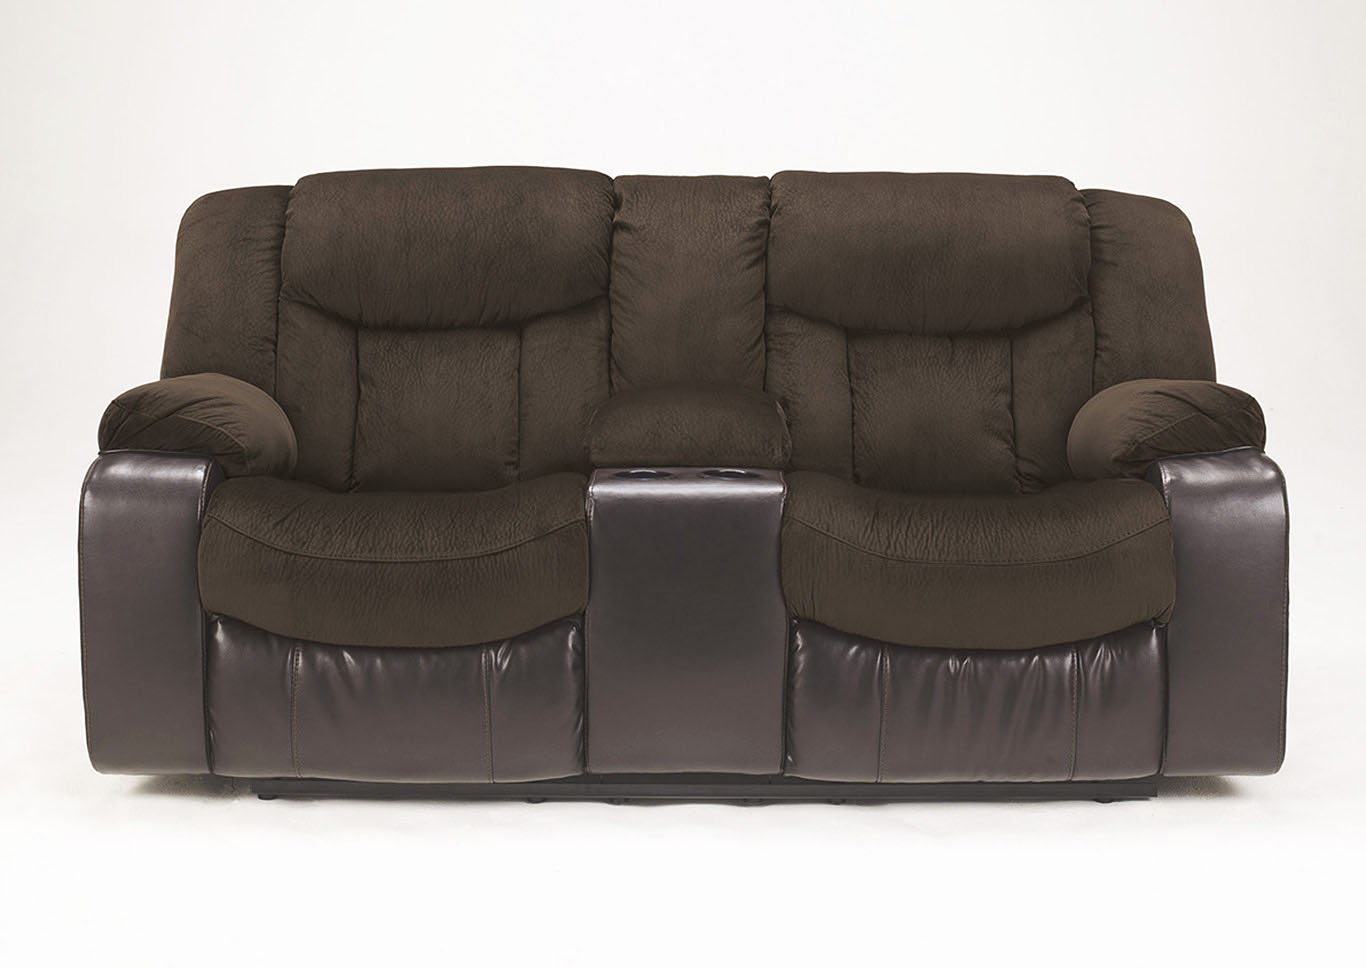 Harlem Furniture Tafton Java Double Reclining Loveseat W Console